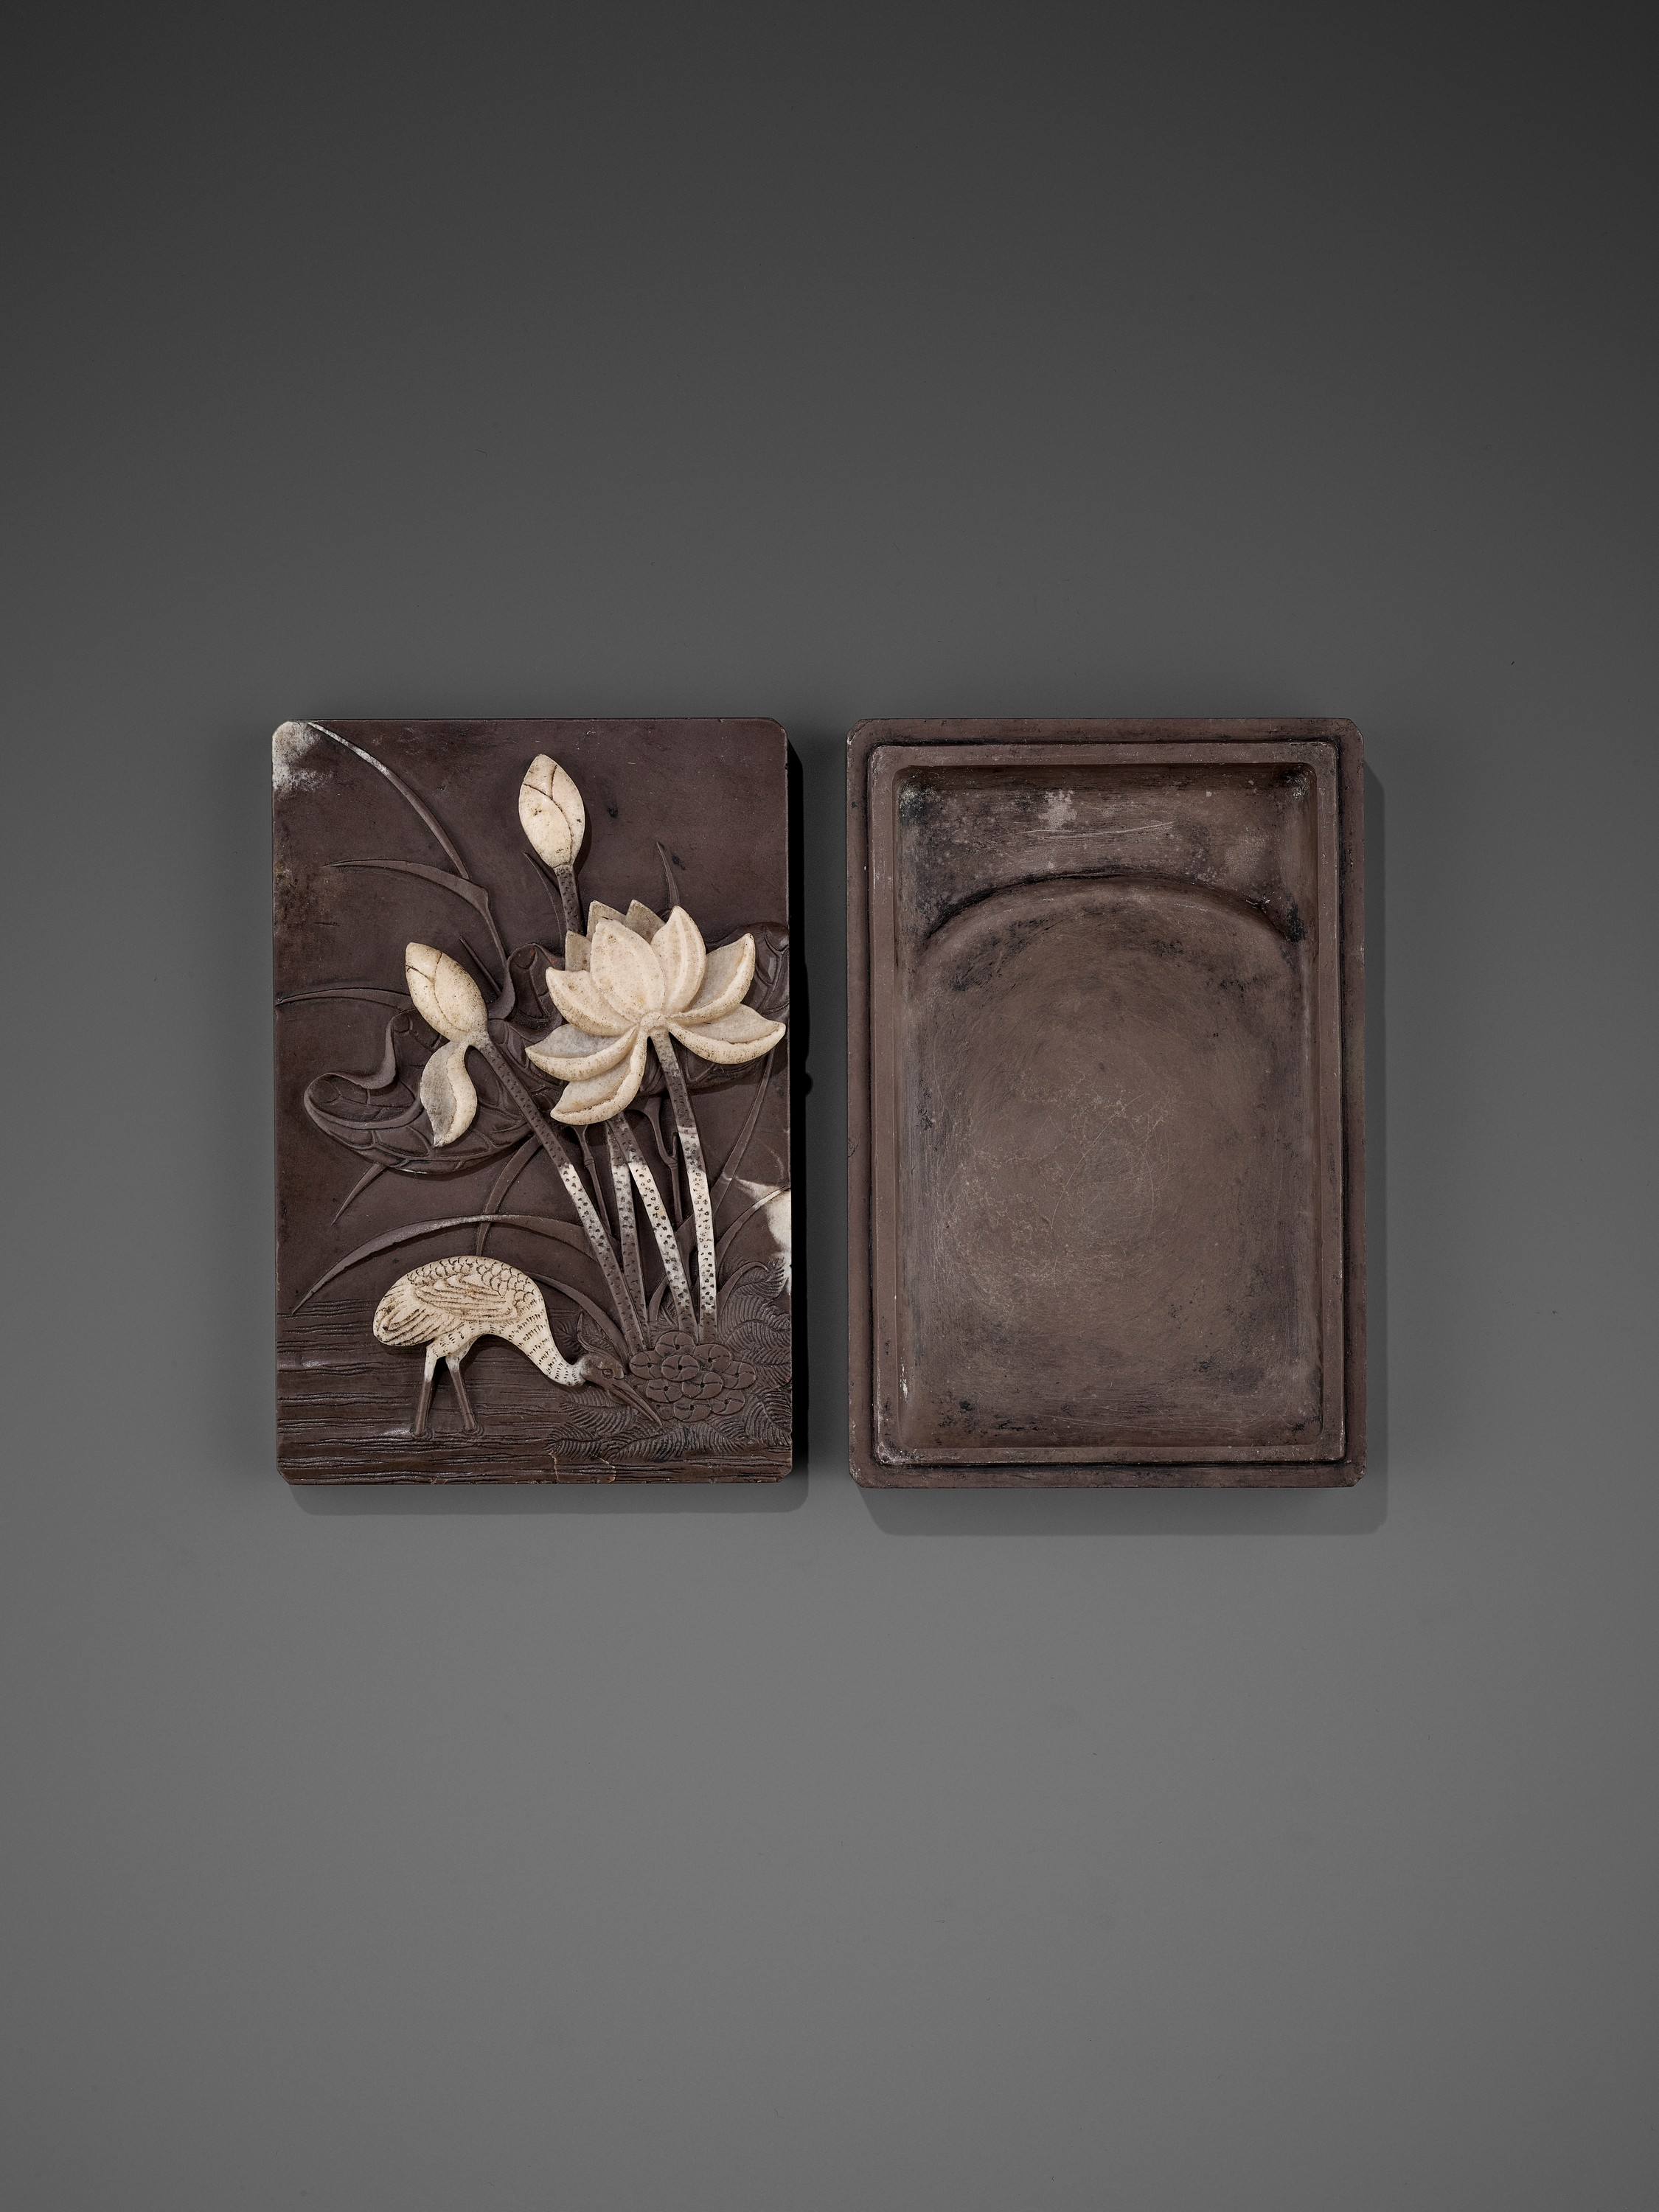 A DUAN 'CRANE AND LOTUS' INKSTONE AND COVER, QING - Image 6 of 12